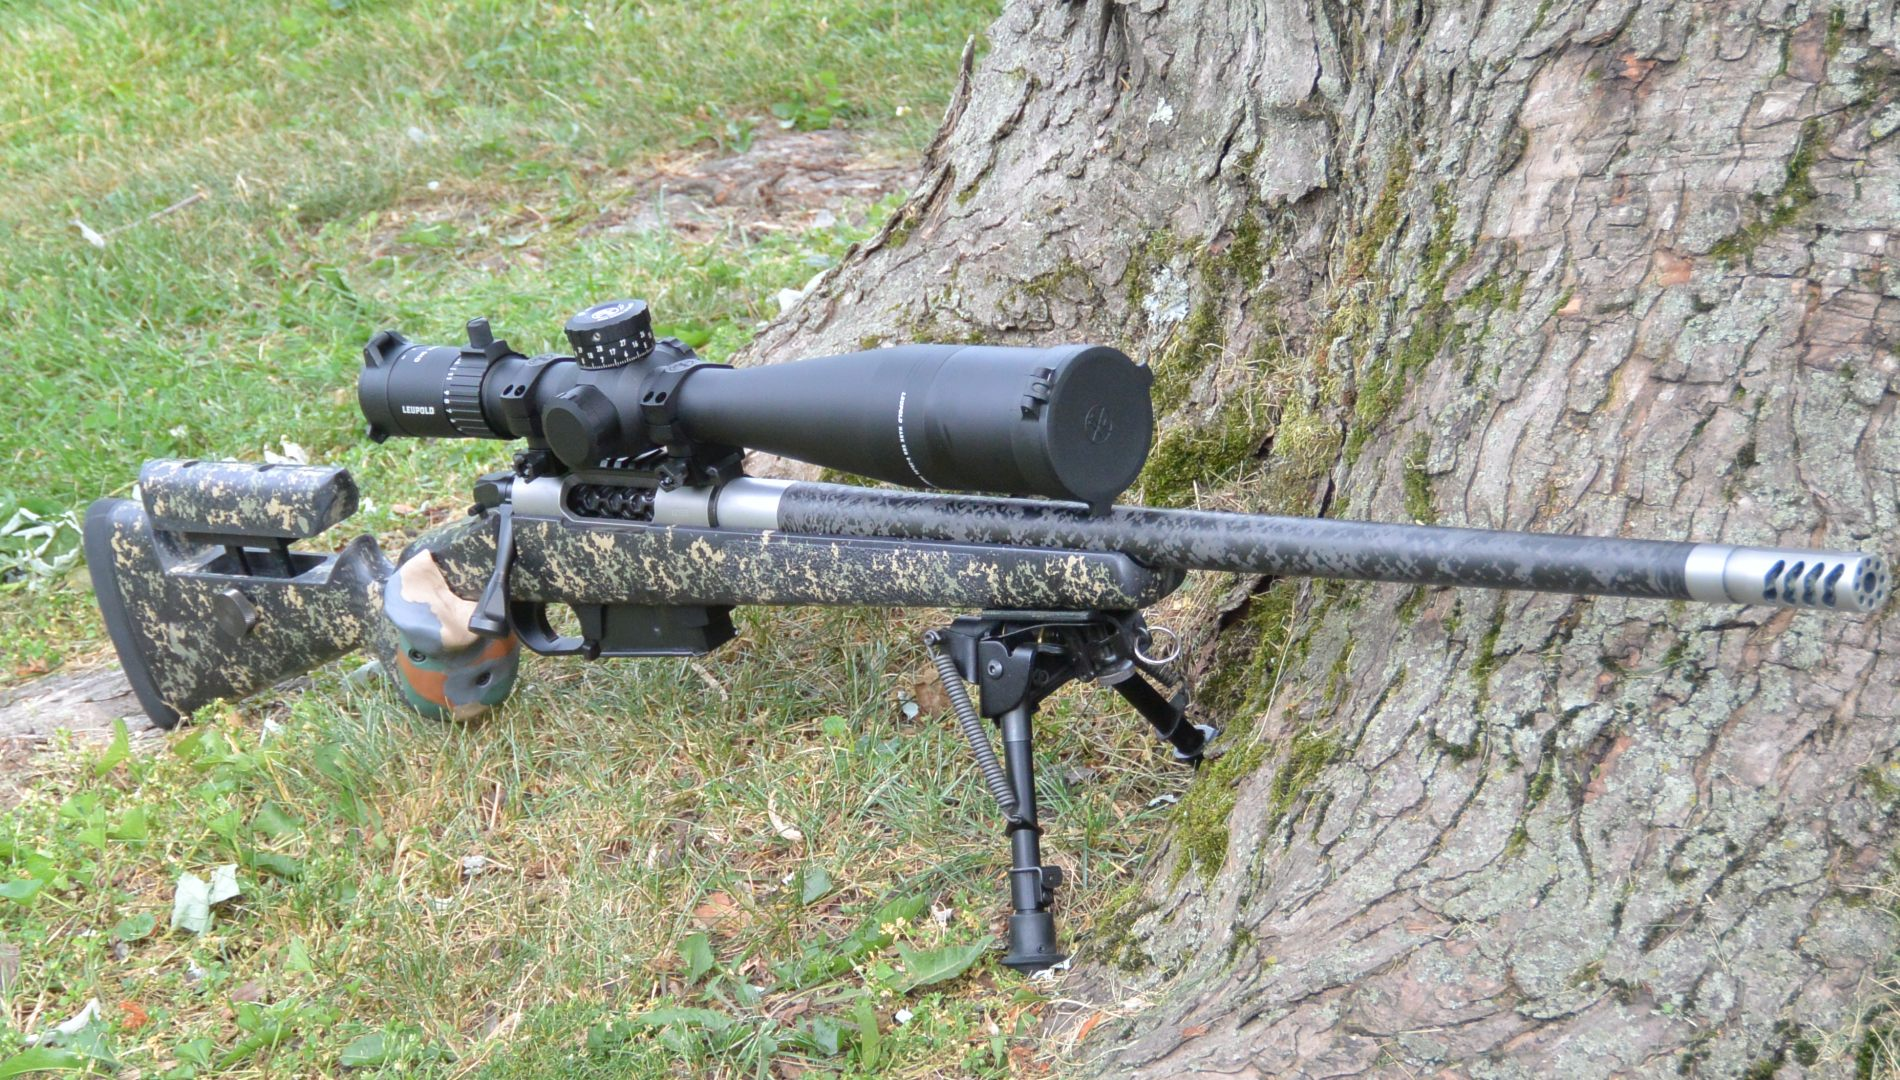 An excellent lightweight hunting setup with the Leupold Mark 5HD 5-25x56 sitting atop the Mesa Precision Arms Crux test rifle from a couple years ago in the McMillan Carbon Game Warden stock